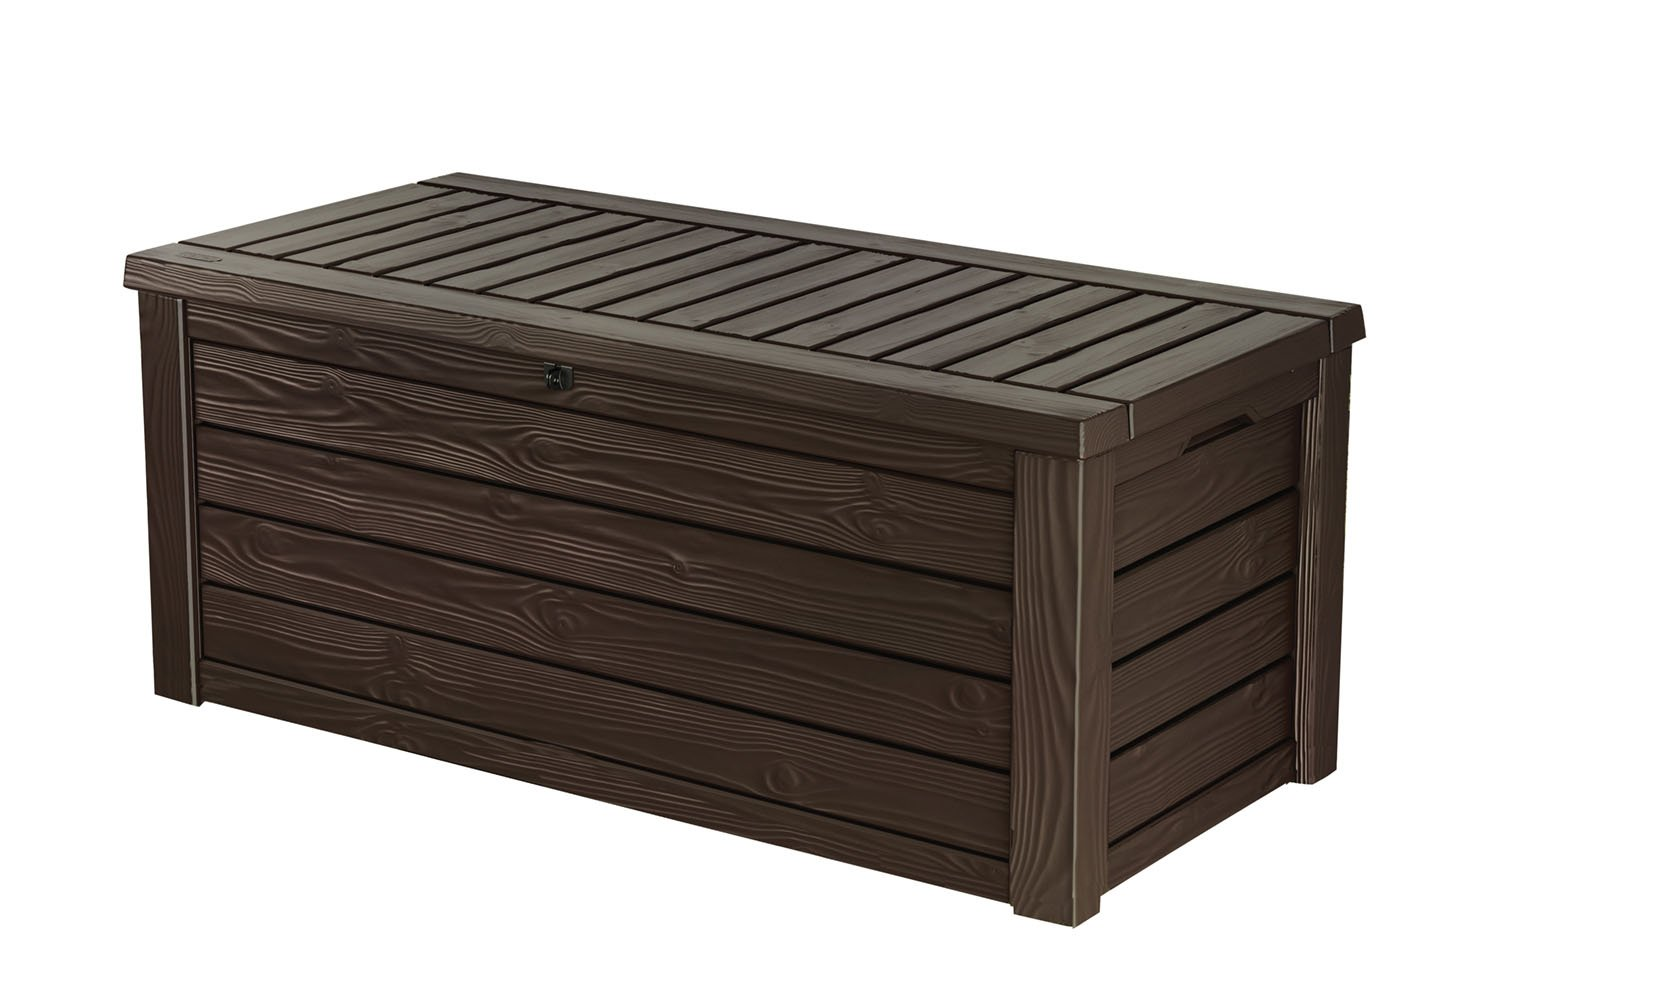 Keter Westwood Plastic Deck Storage Container Box Outdoor Patio Garden Furniture 150 Gal, Brown by Keter